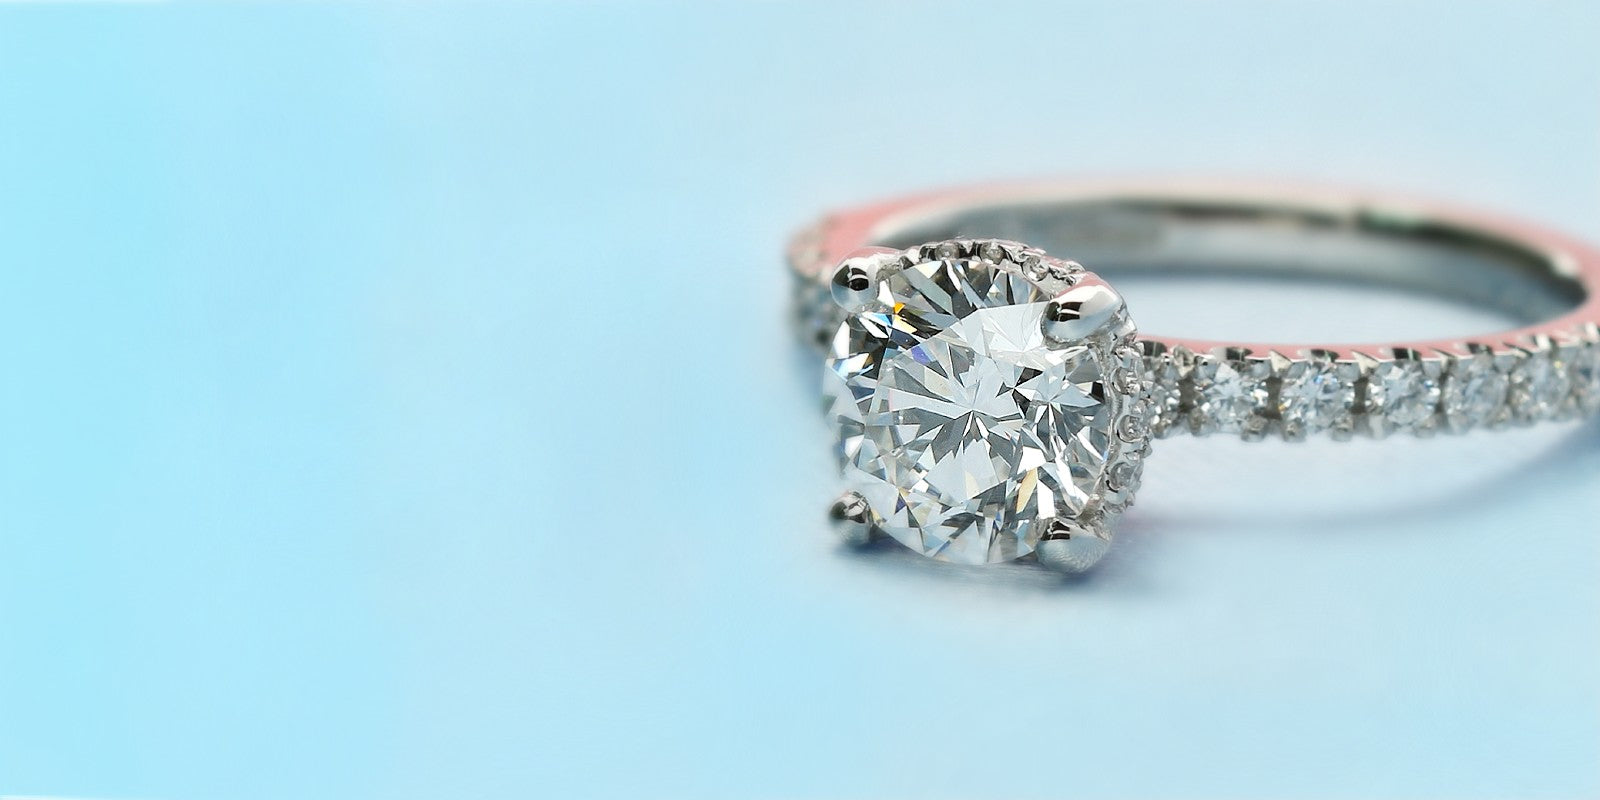 Lab grown diamond engagement rings - Pure Carats UK